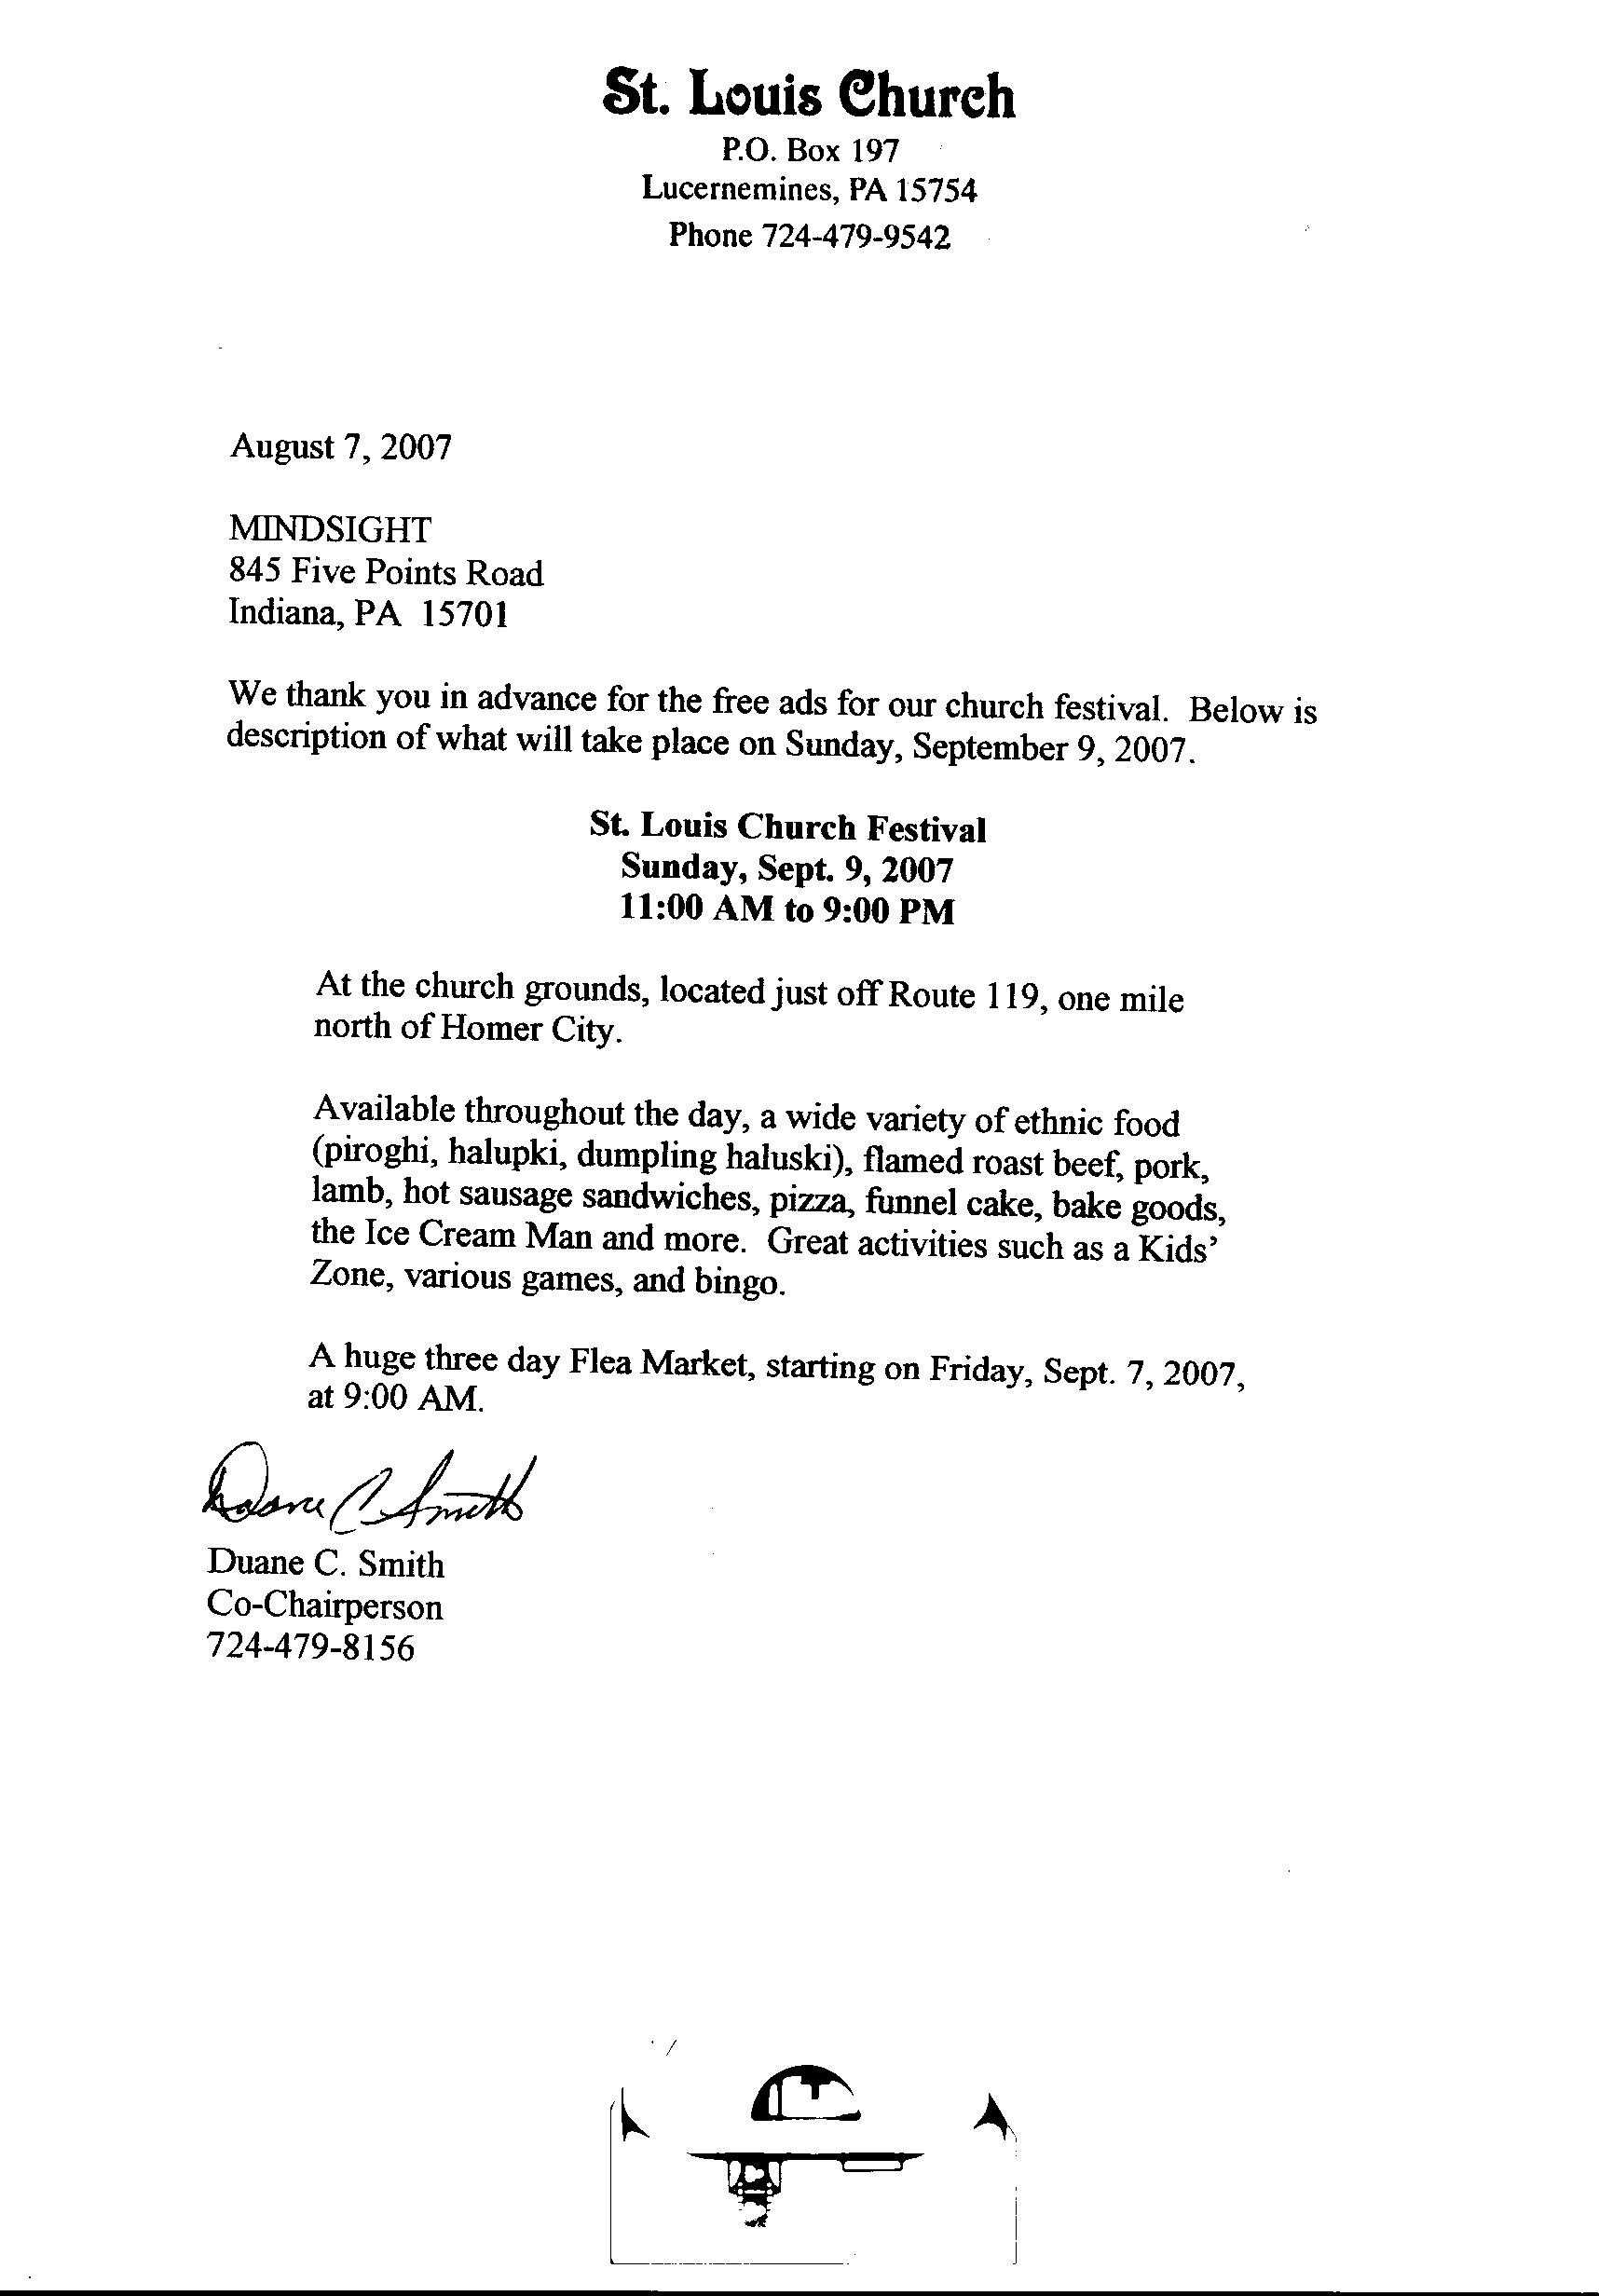 Donor Thank You Letter Template - Church Donation form Template to Her with Donation Thank You